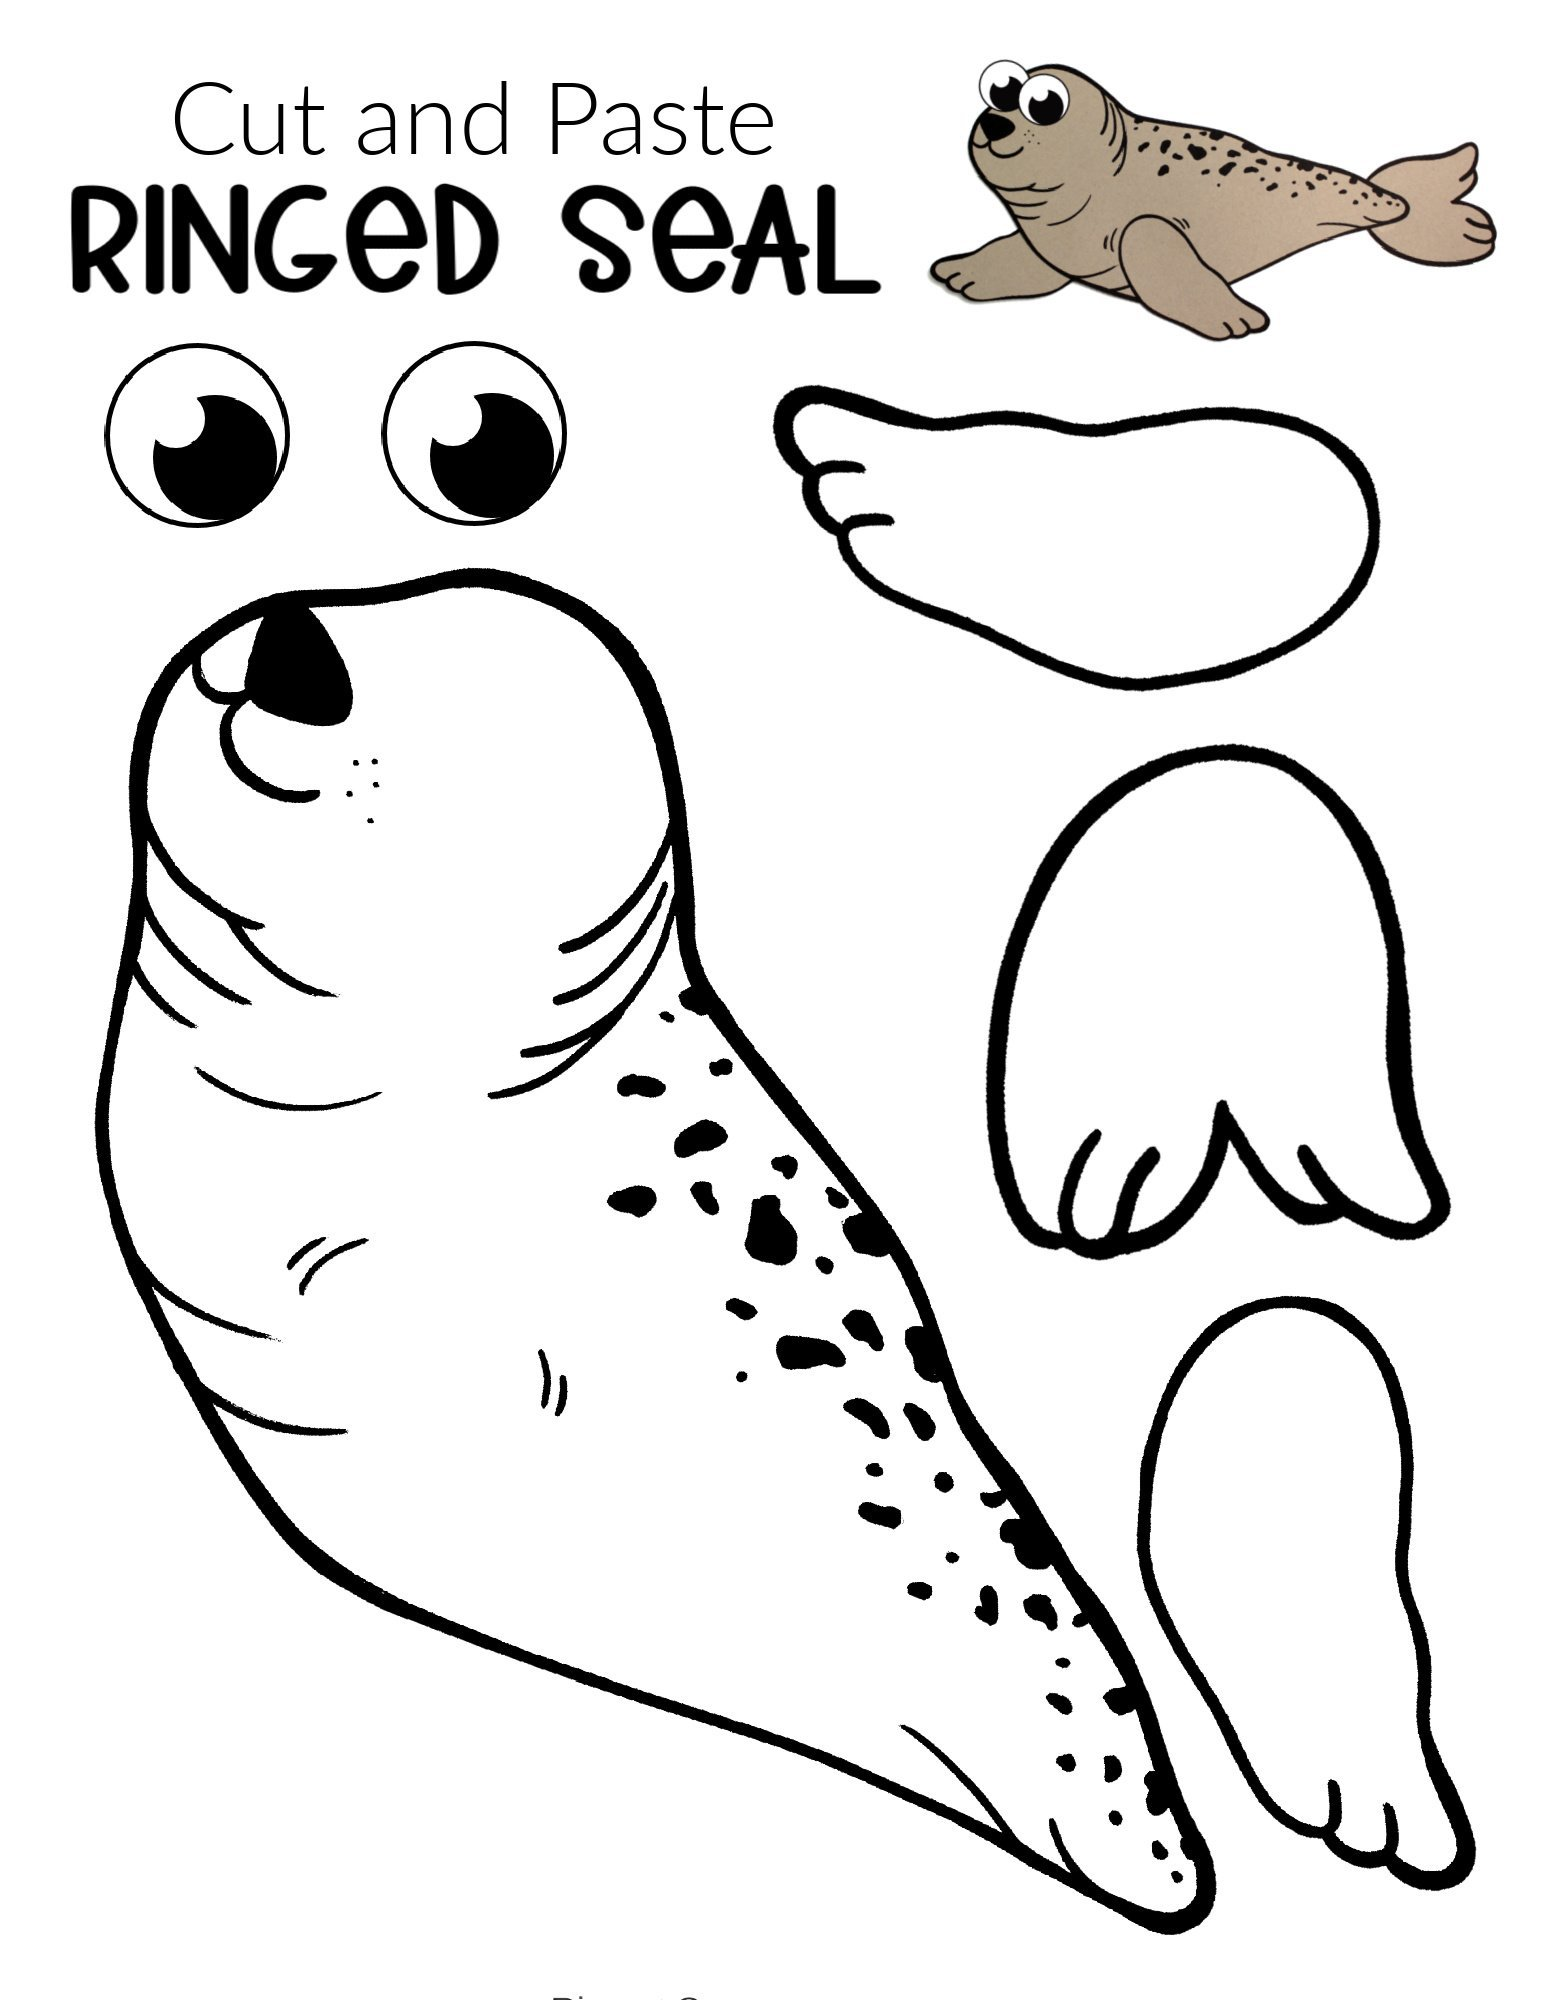 Free Printable Arctic Animal Ringed Seal Craft for Kids Preschoolers and Toddlers